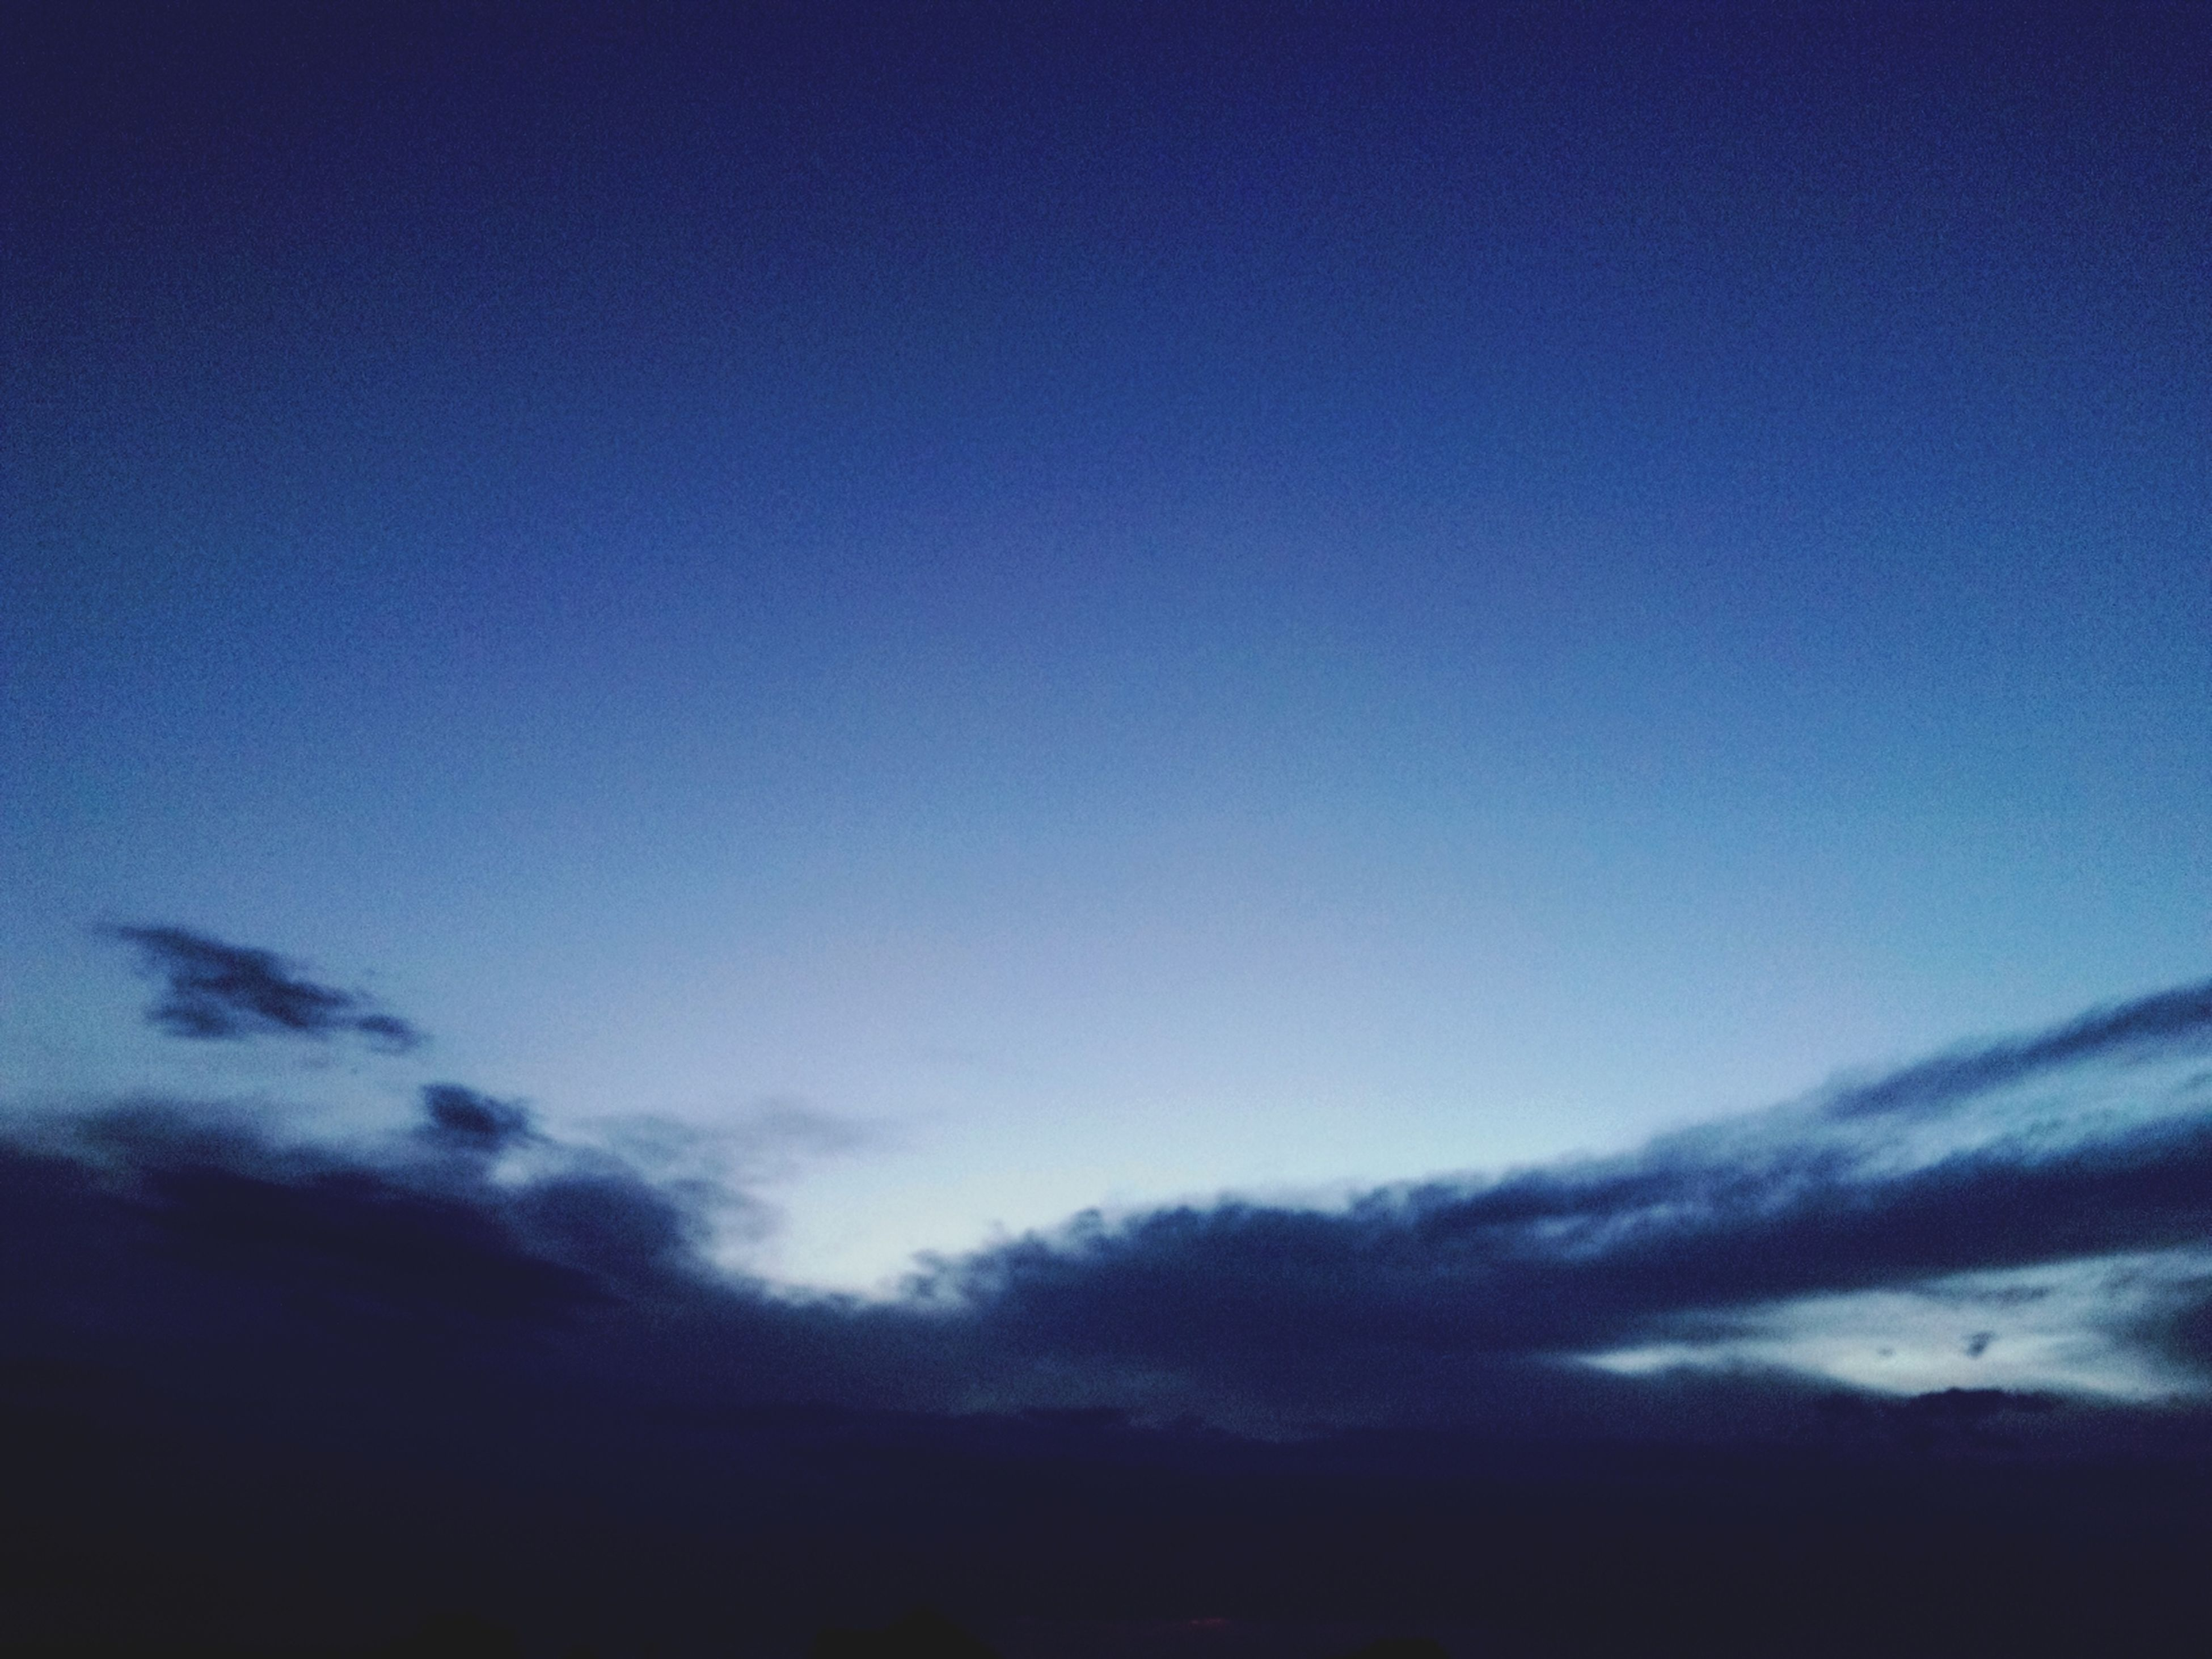 blue, scenics, beauty in nature, tranquility, tranquil scene, sky, copy space, nature, silhouette, low angle view, idyllic, cloud - sky, dusk, majestic, outdoors, cloudscape, cloud, no people, sunset, clear sky